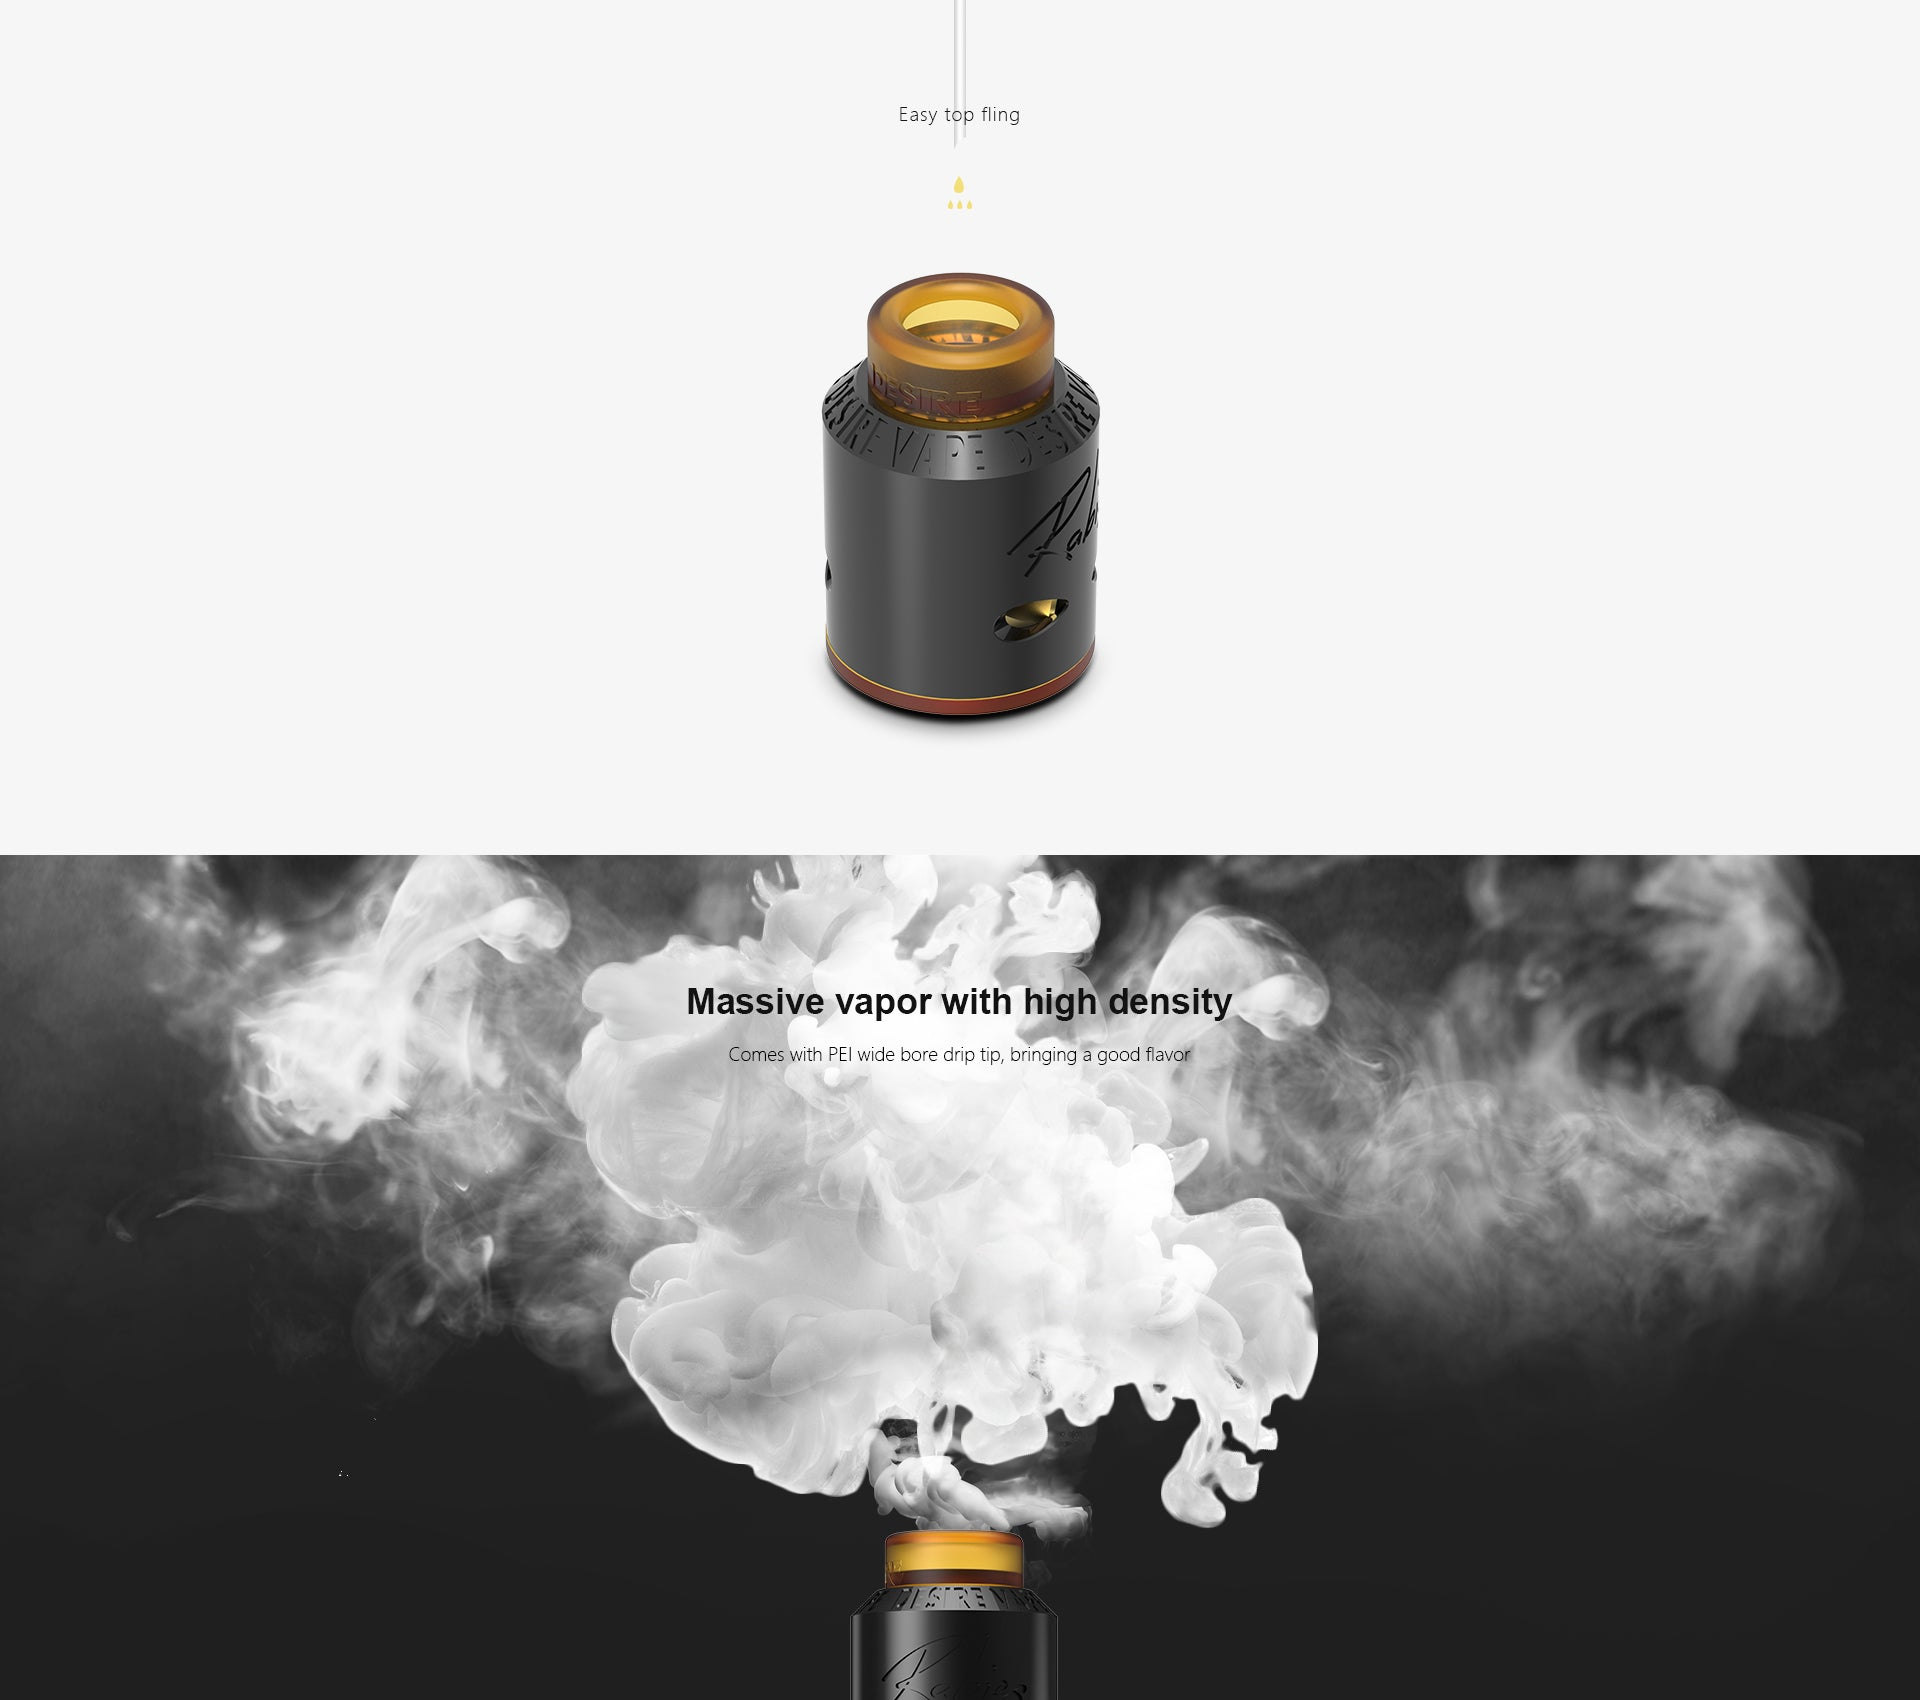 Massive vapor with high density                   Comes with PEI wide bore drip tip, bringing a good flavor